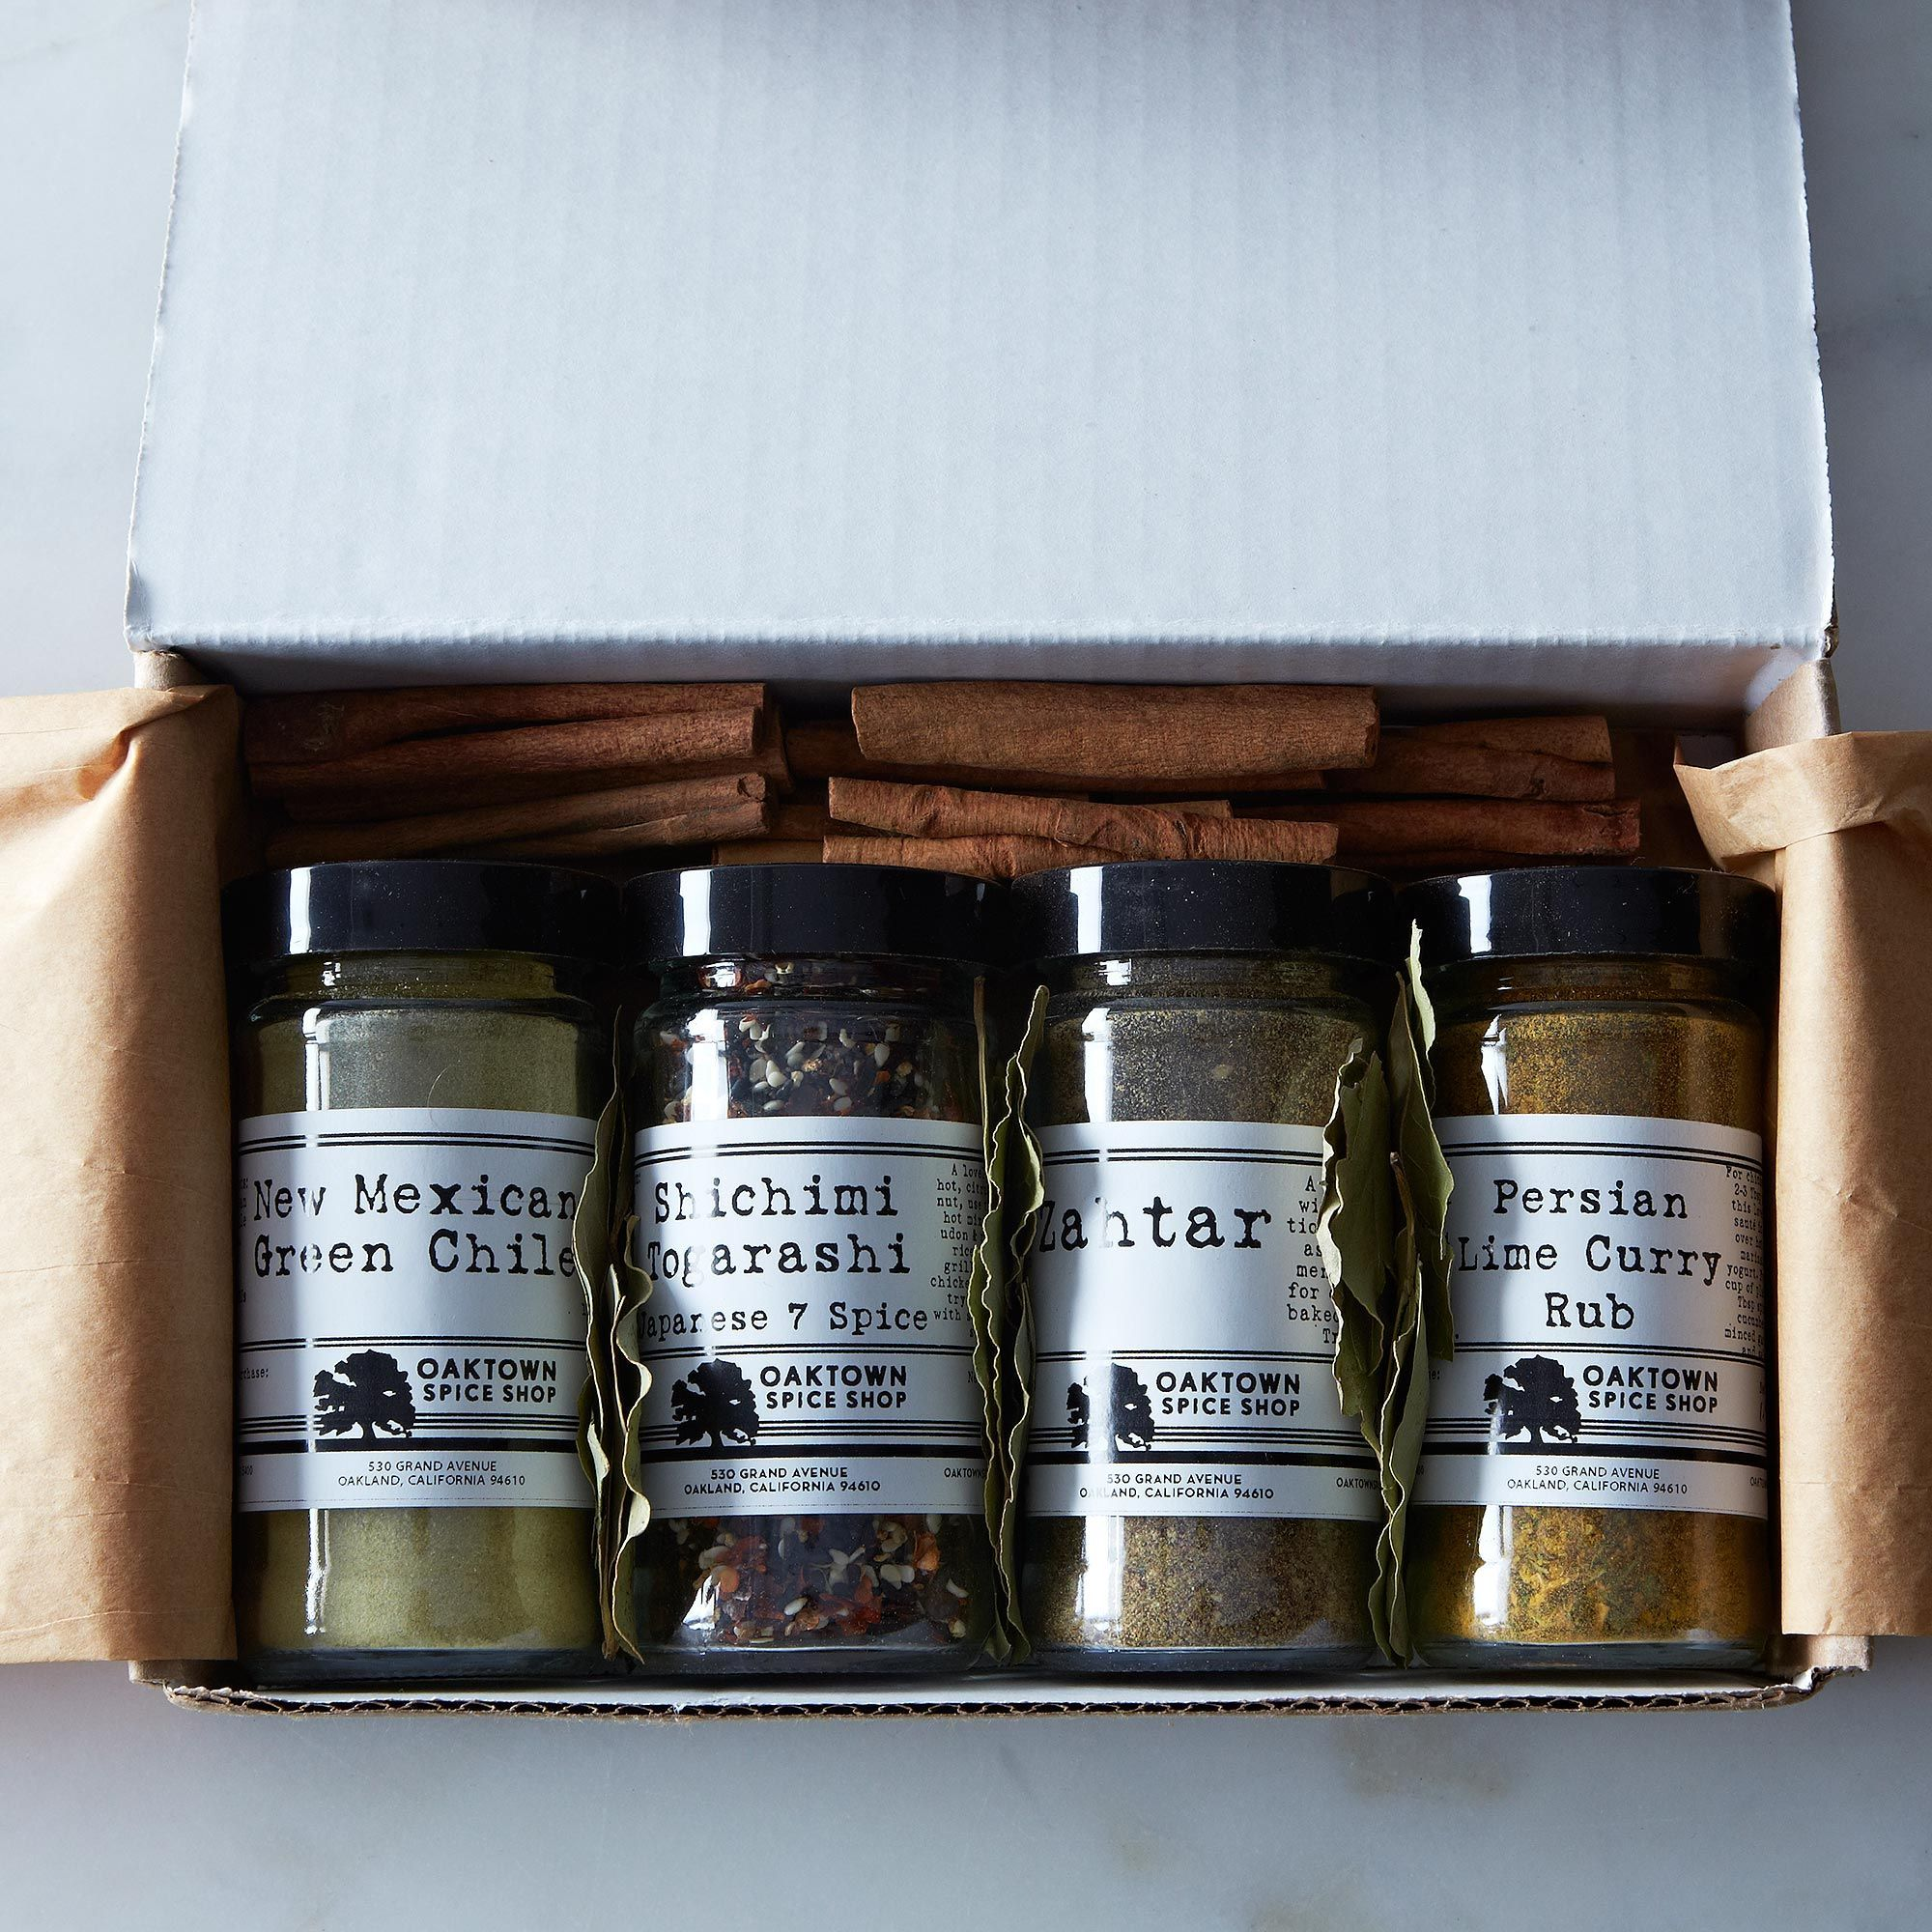 C0796ddb 6217 426f 8287 ac4ddfe312fa  2013 1123 oaktown spice shop flavors of the world gift set 015 034